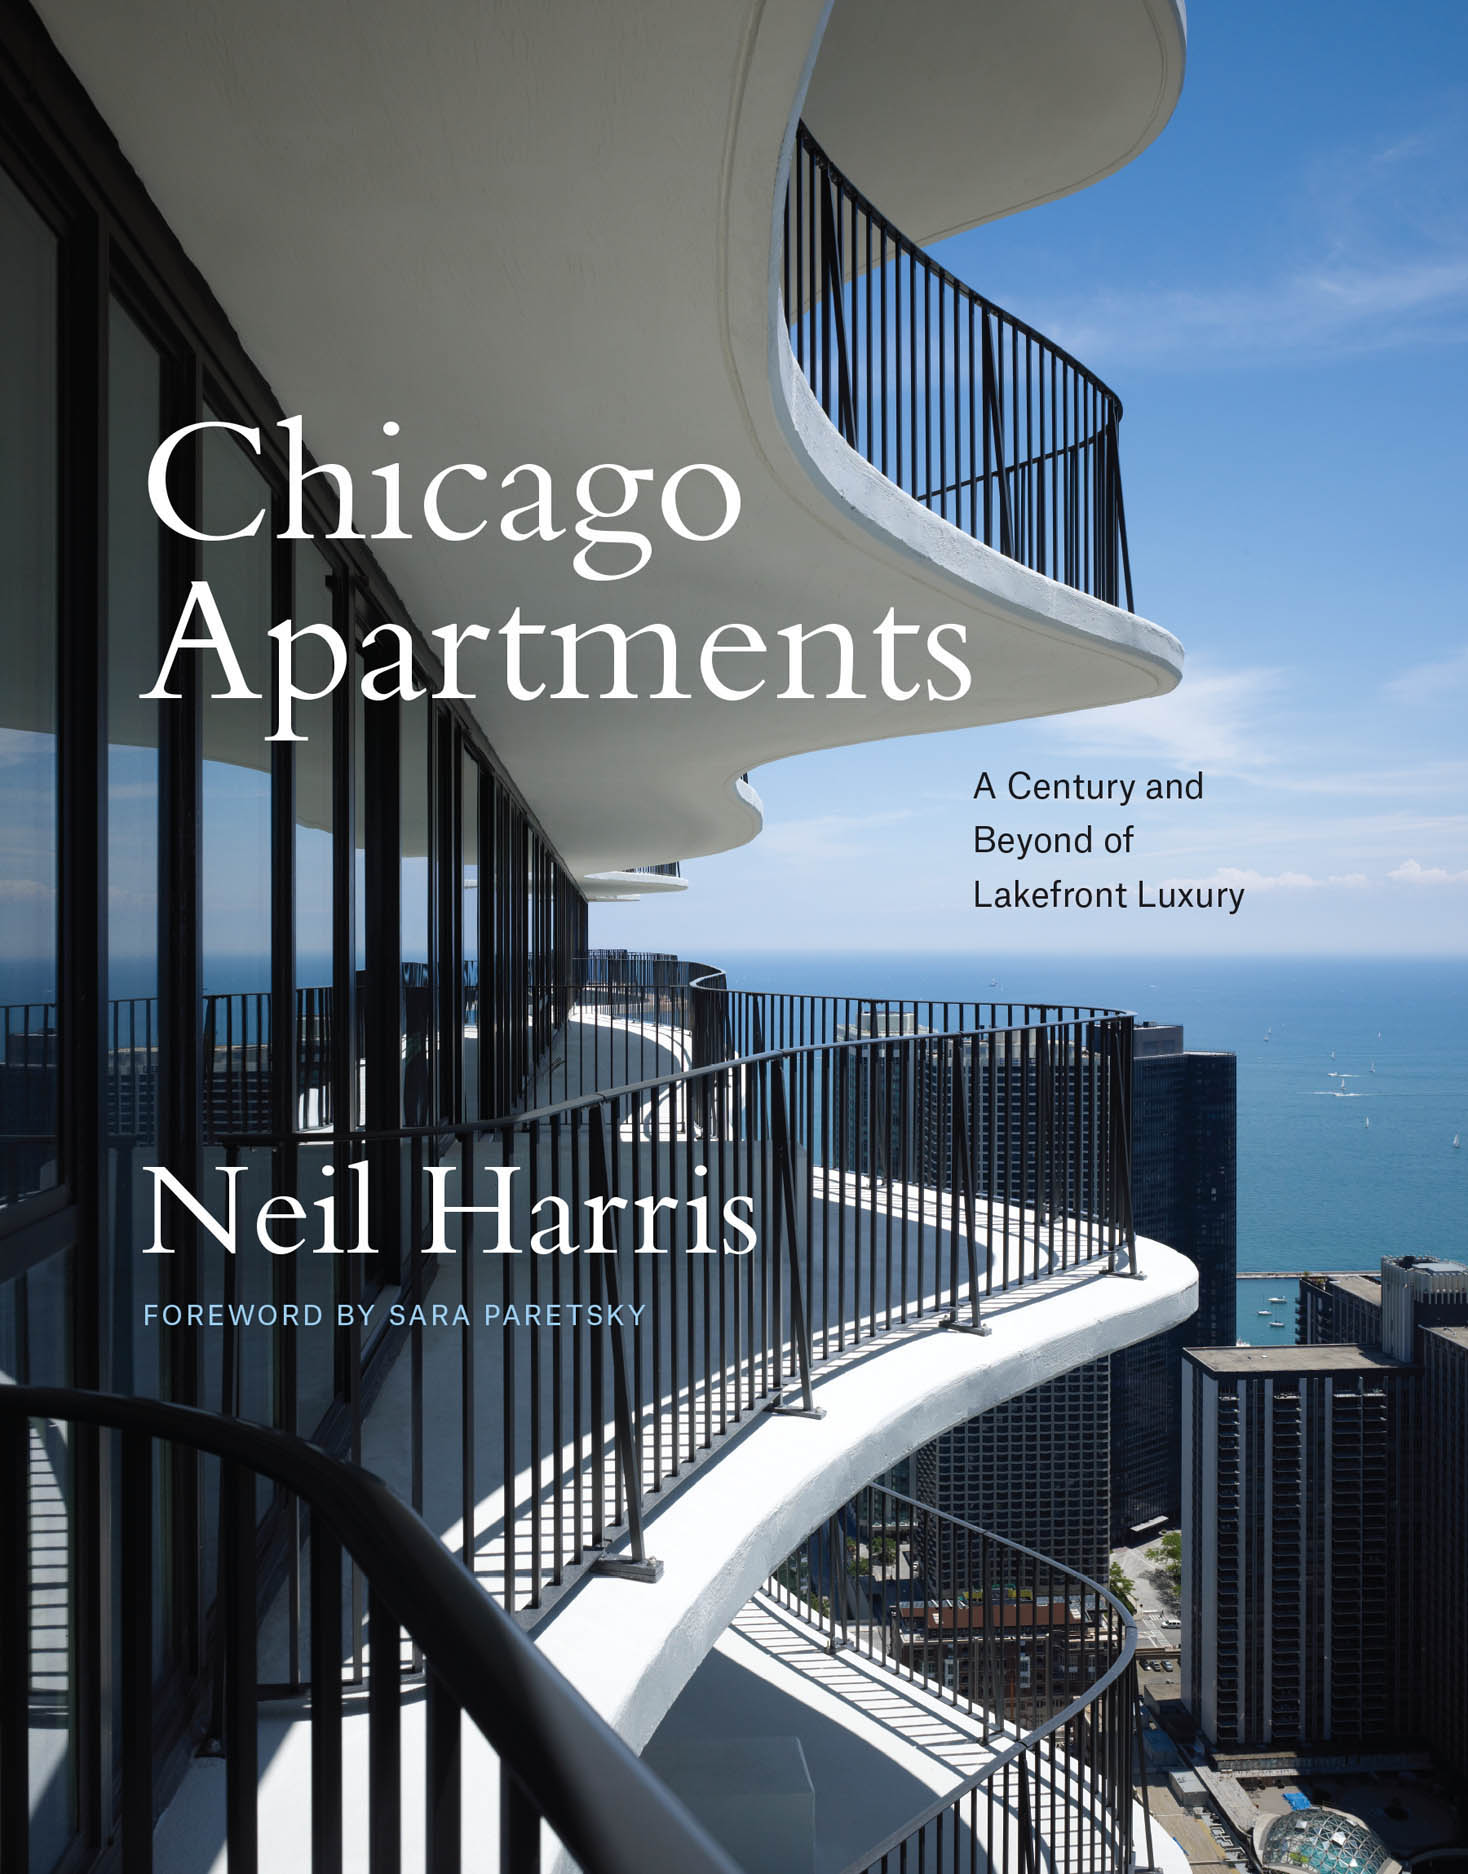 Chicago Apartments: A Century and Beyond of Lakefront Luxury